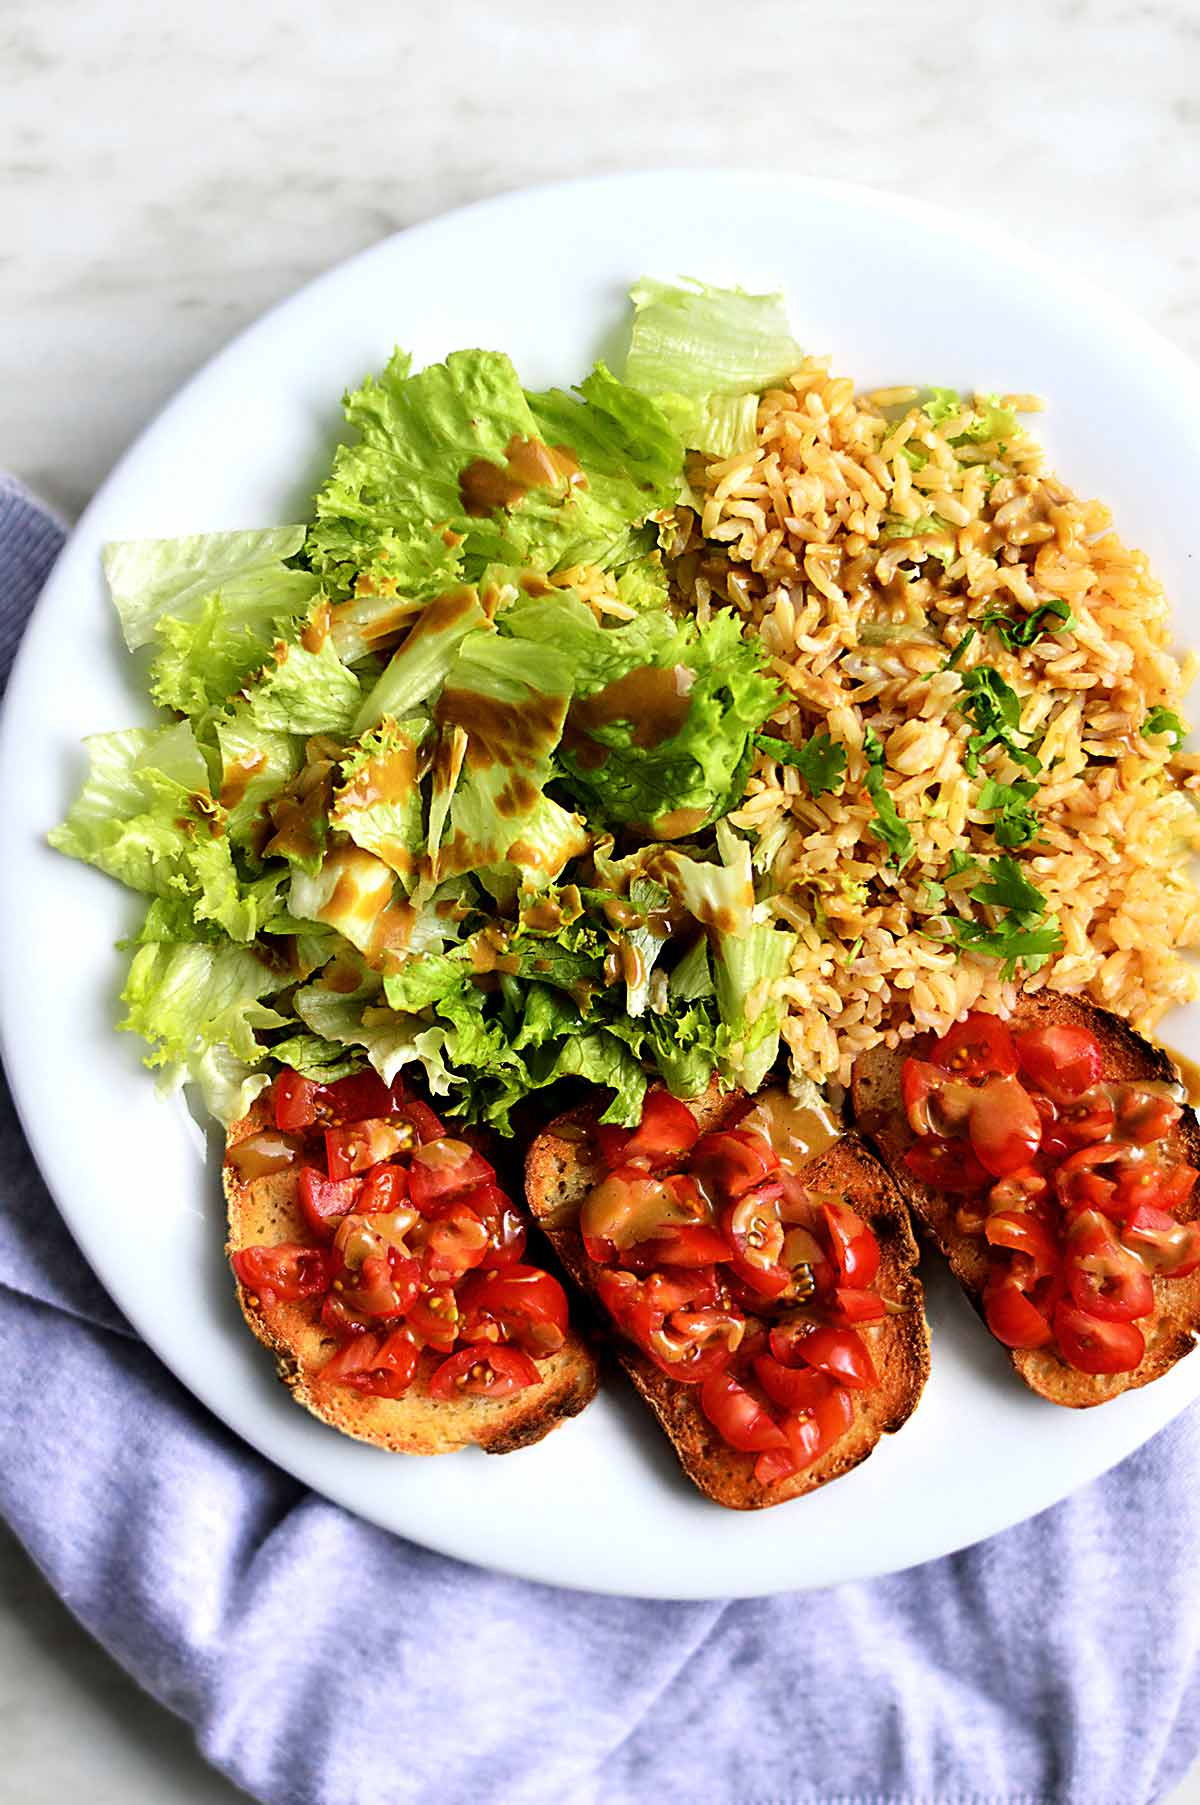 Rice, salad and tomatoes on toast